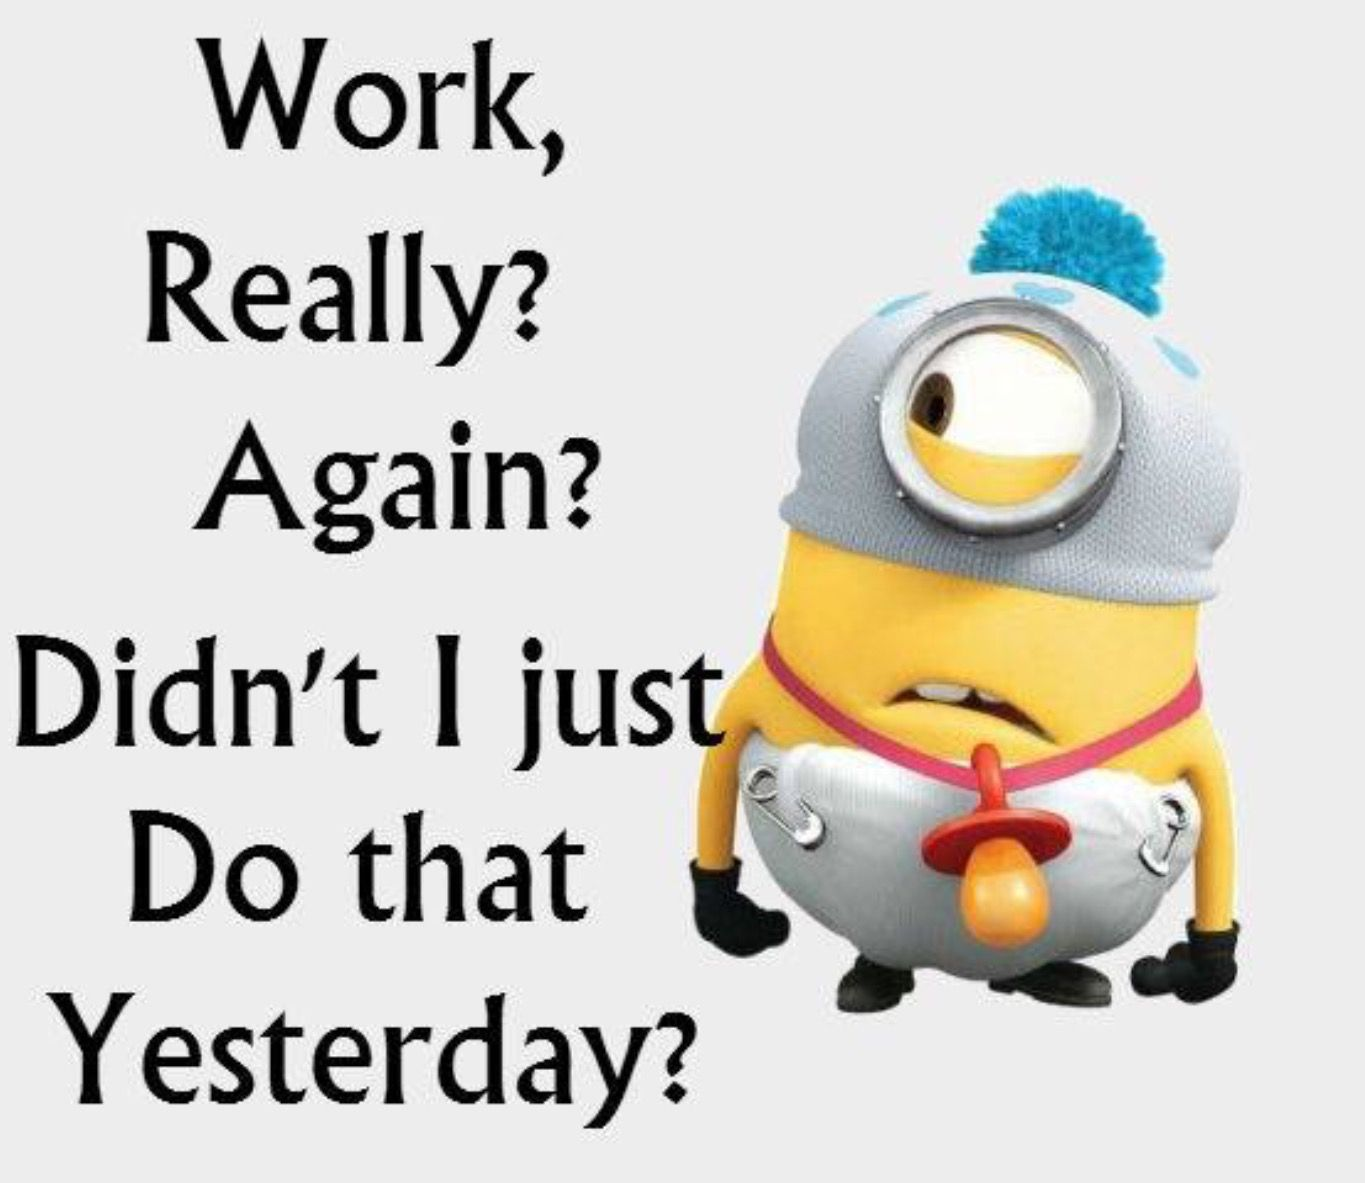 22 New Silly Minion Quotes #minionquotes #funnyminion #minionpictures #lol # Minions